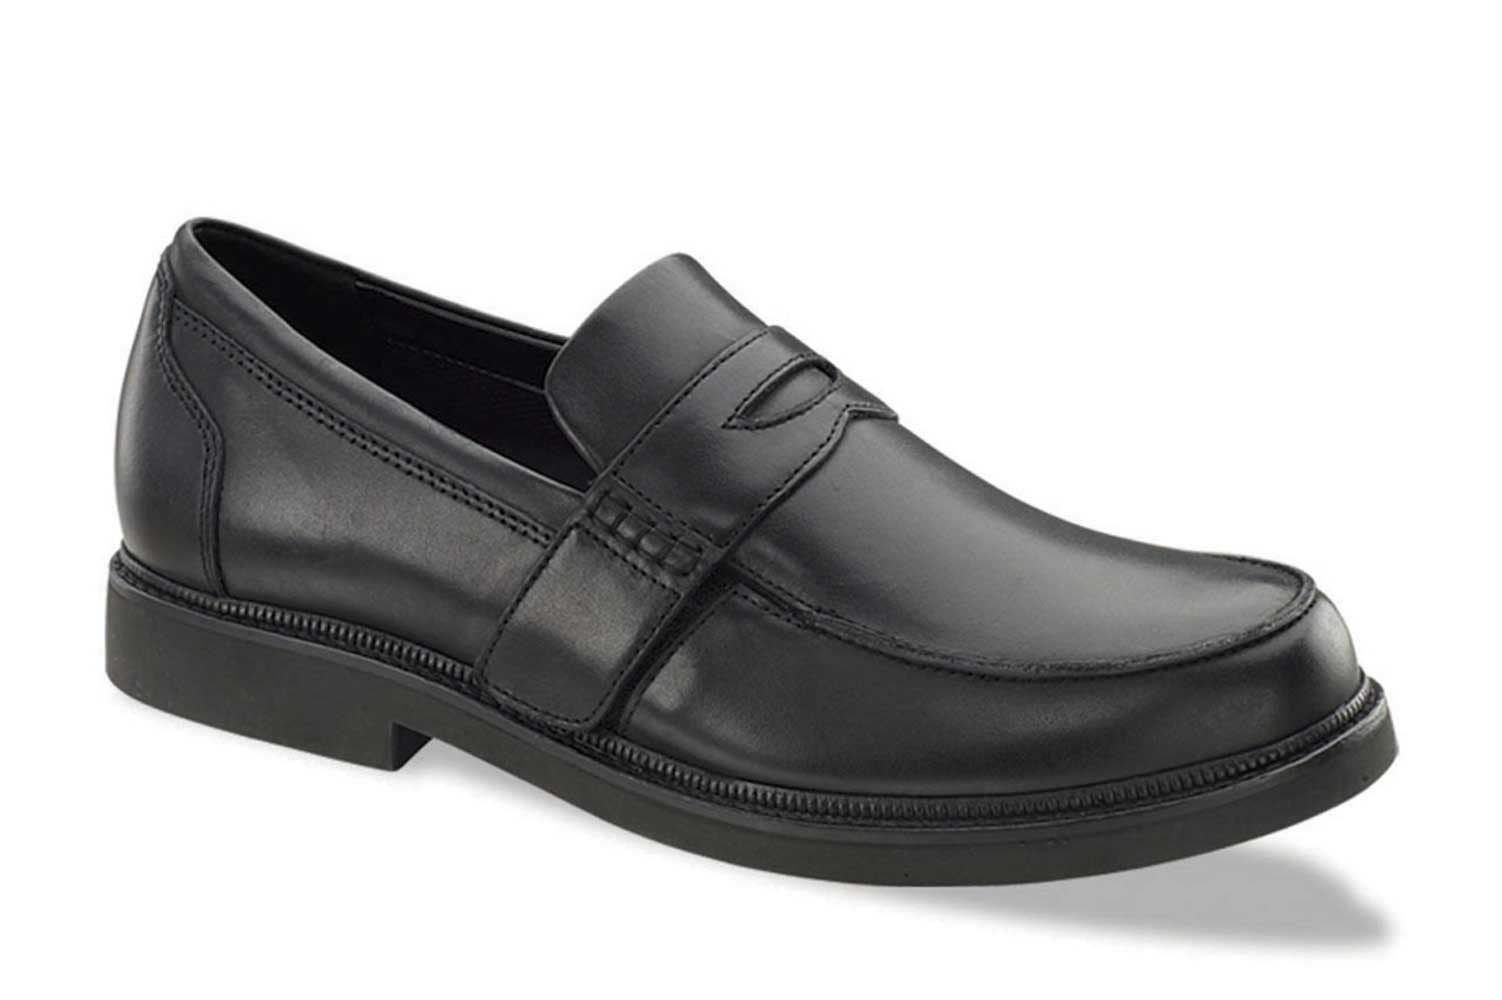 Apex LT200M Lexington Classic Oxford - Dress Shoe